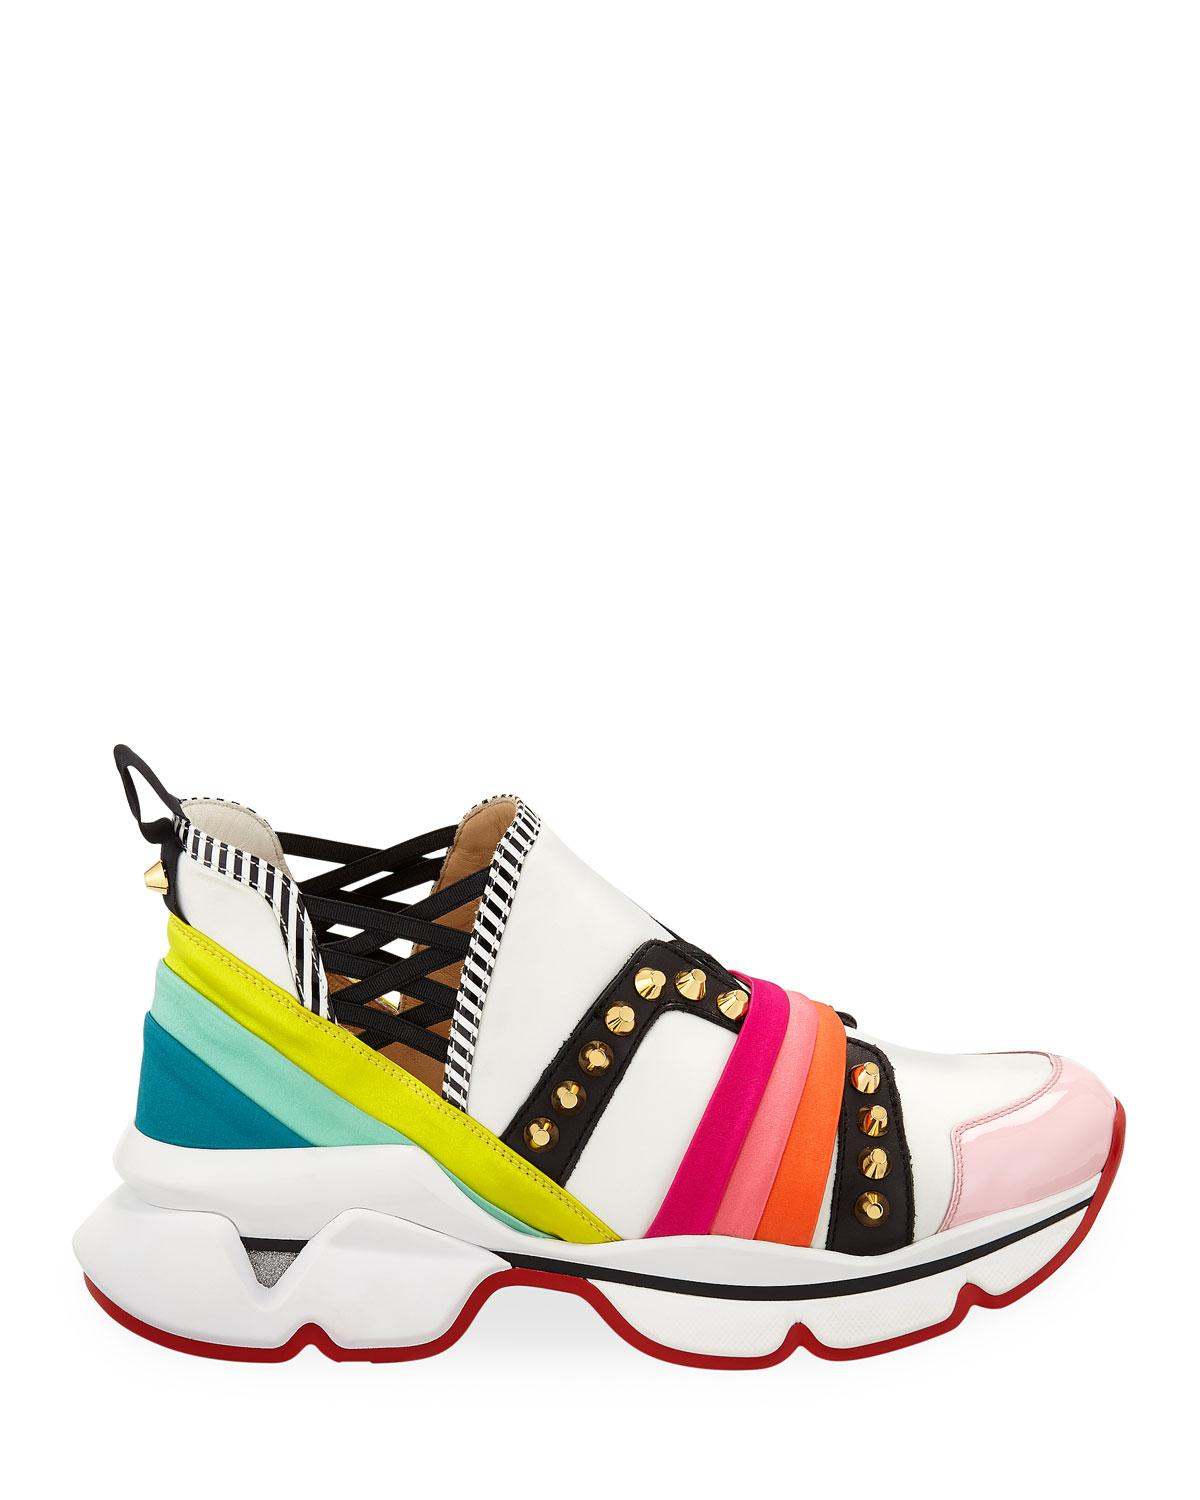 new arrival a05a1 2ce79 Christian Louboutin 123 Run Rainbow Red Sole Sneakers in Red - Lyst